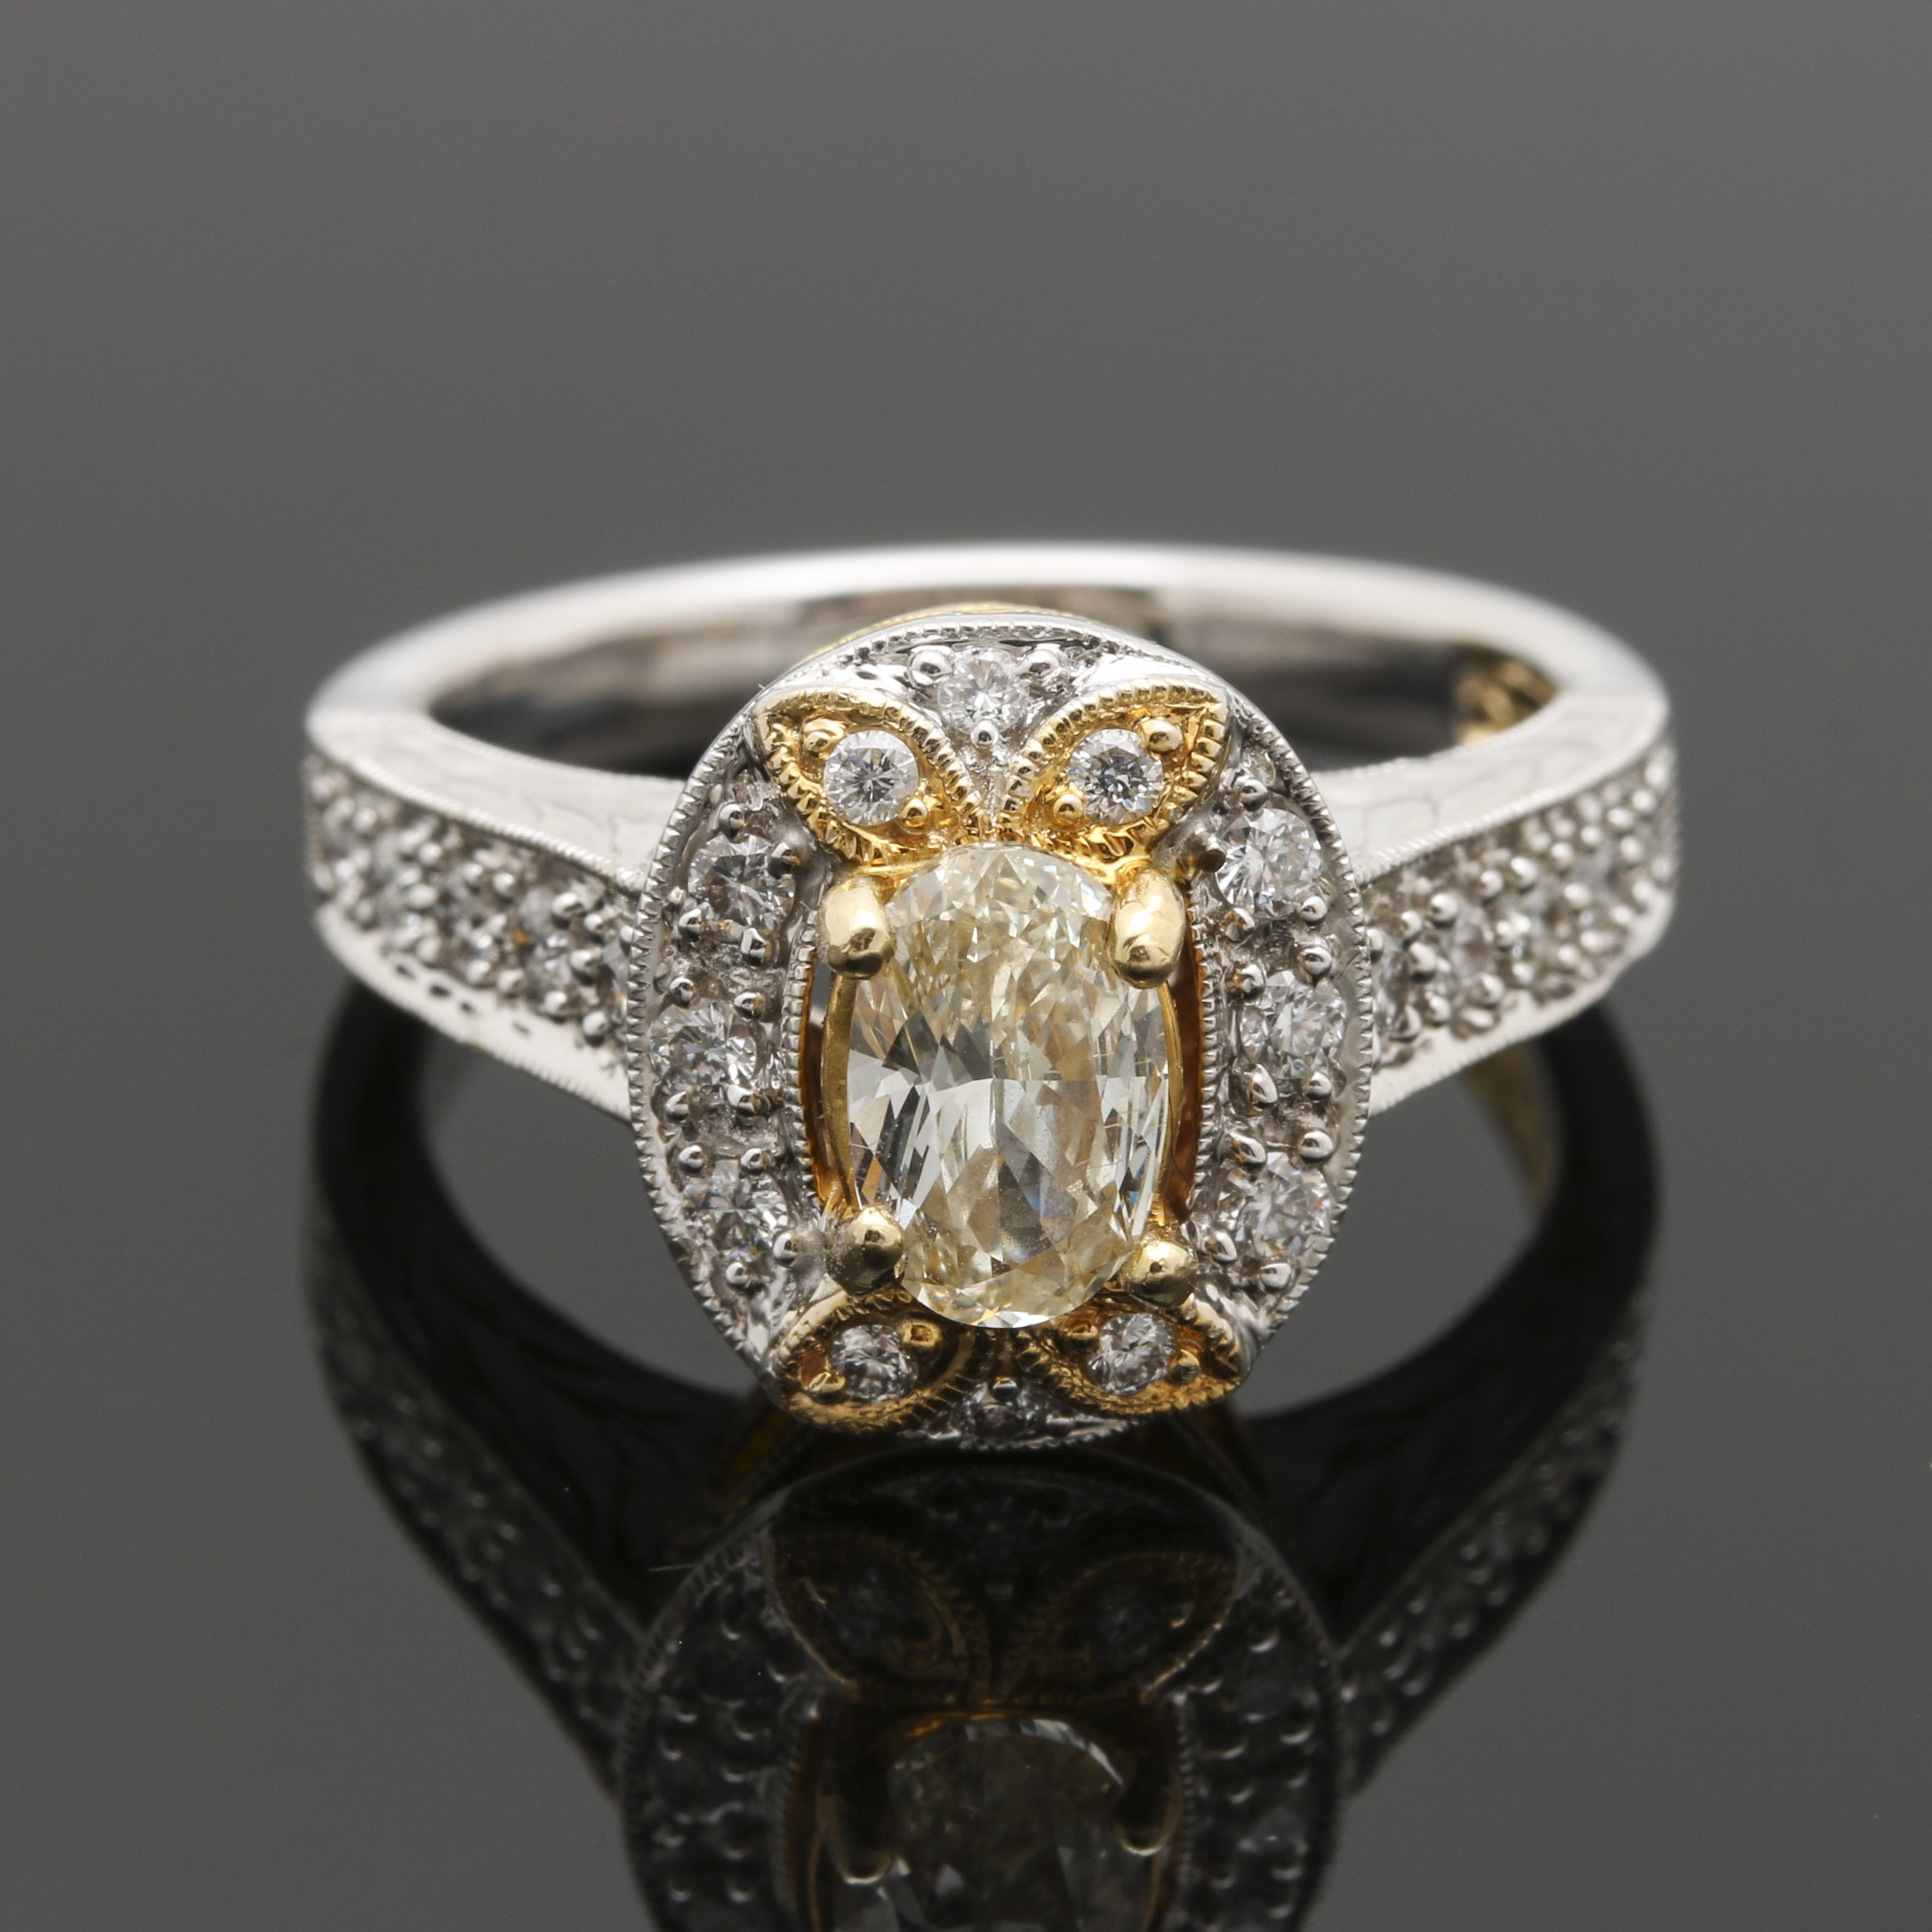 Shaguy 18K White and Yellow Gold Diamond Ring